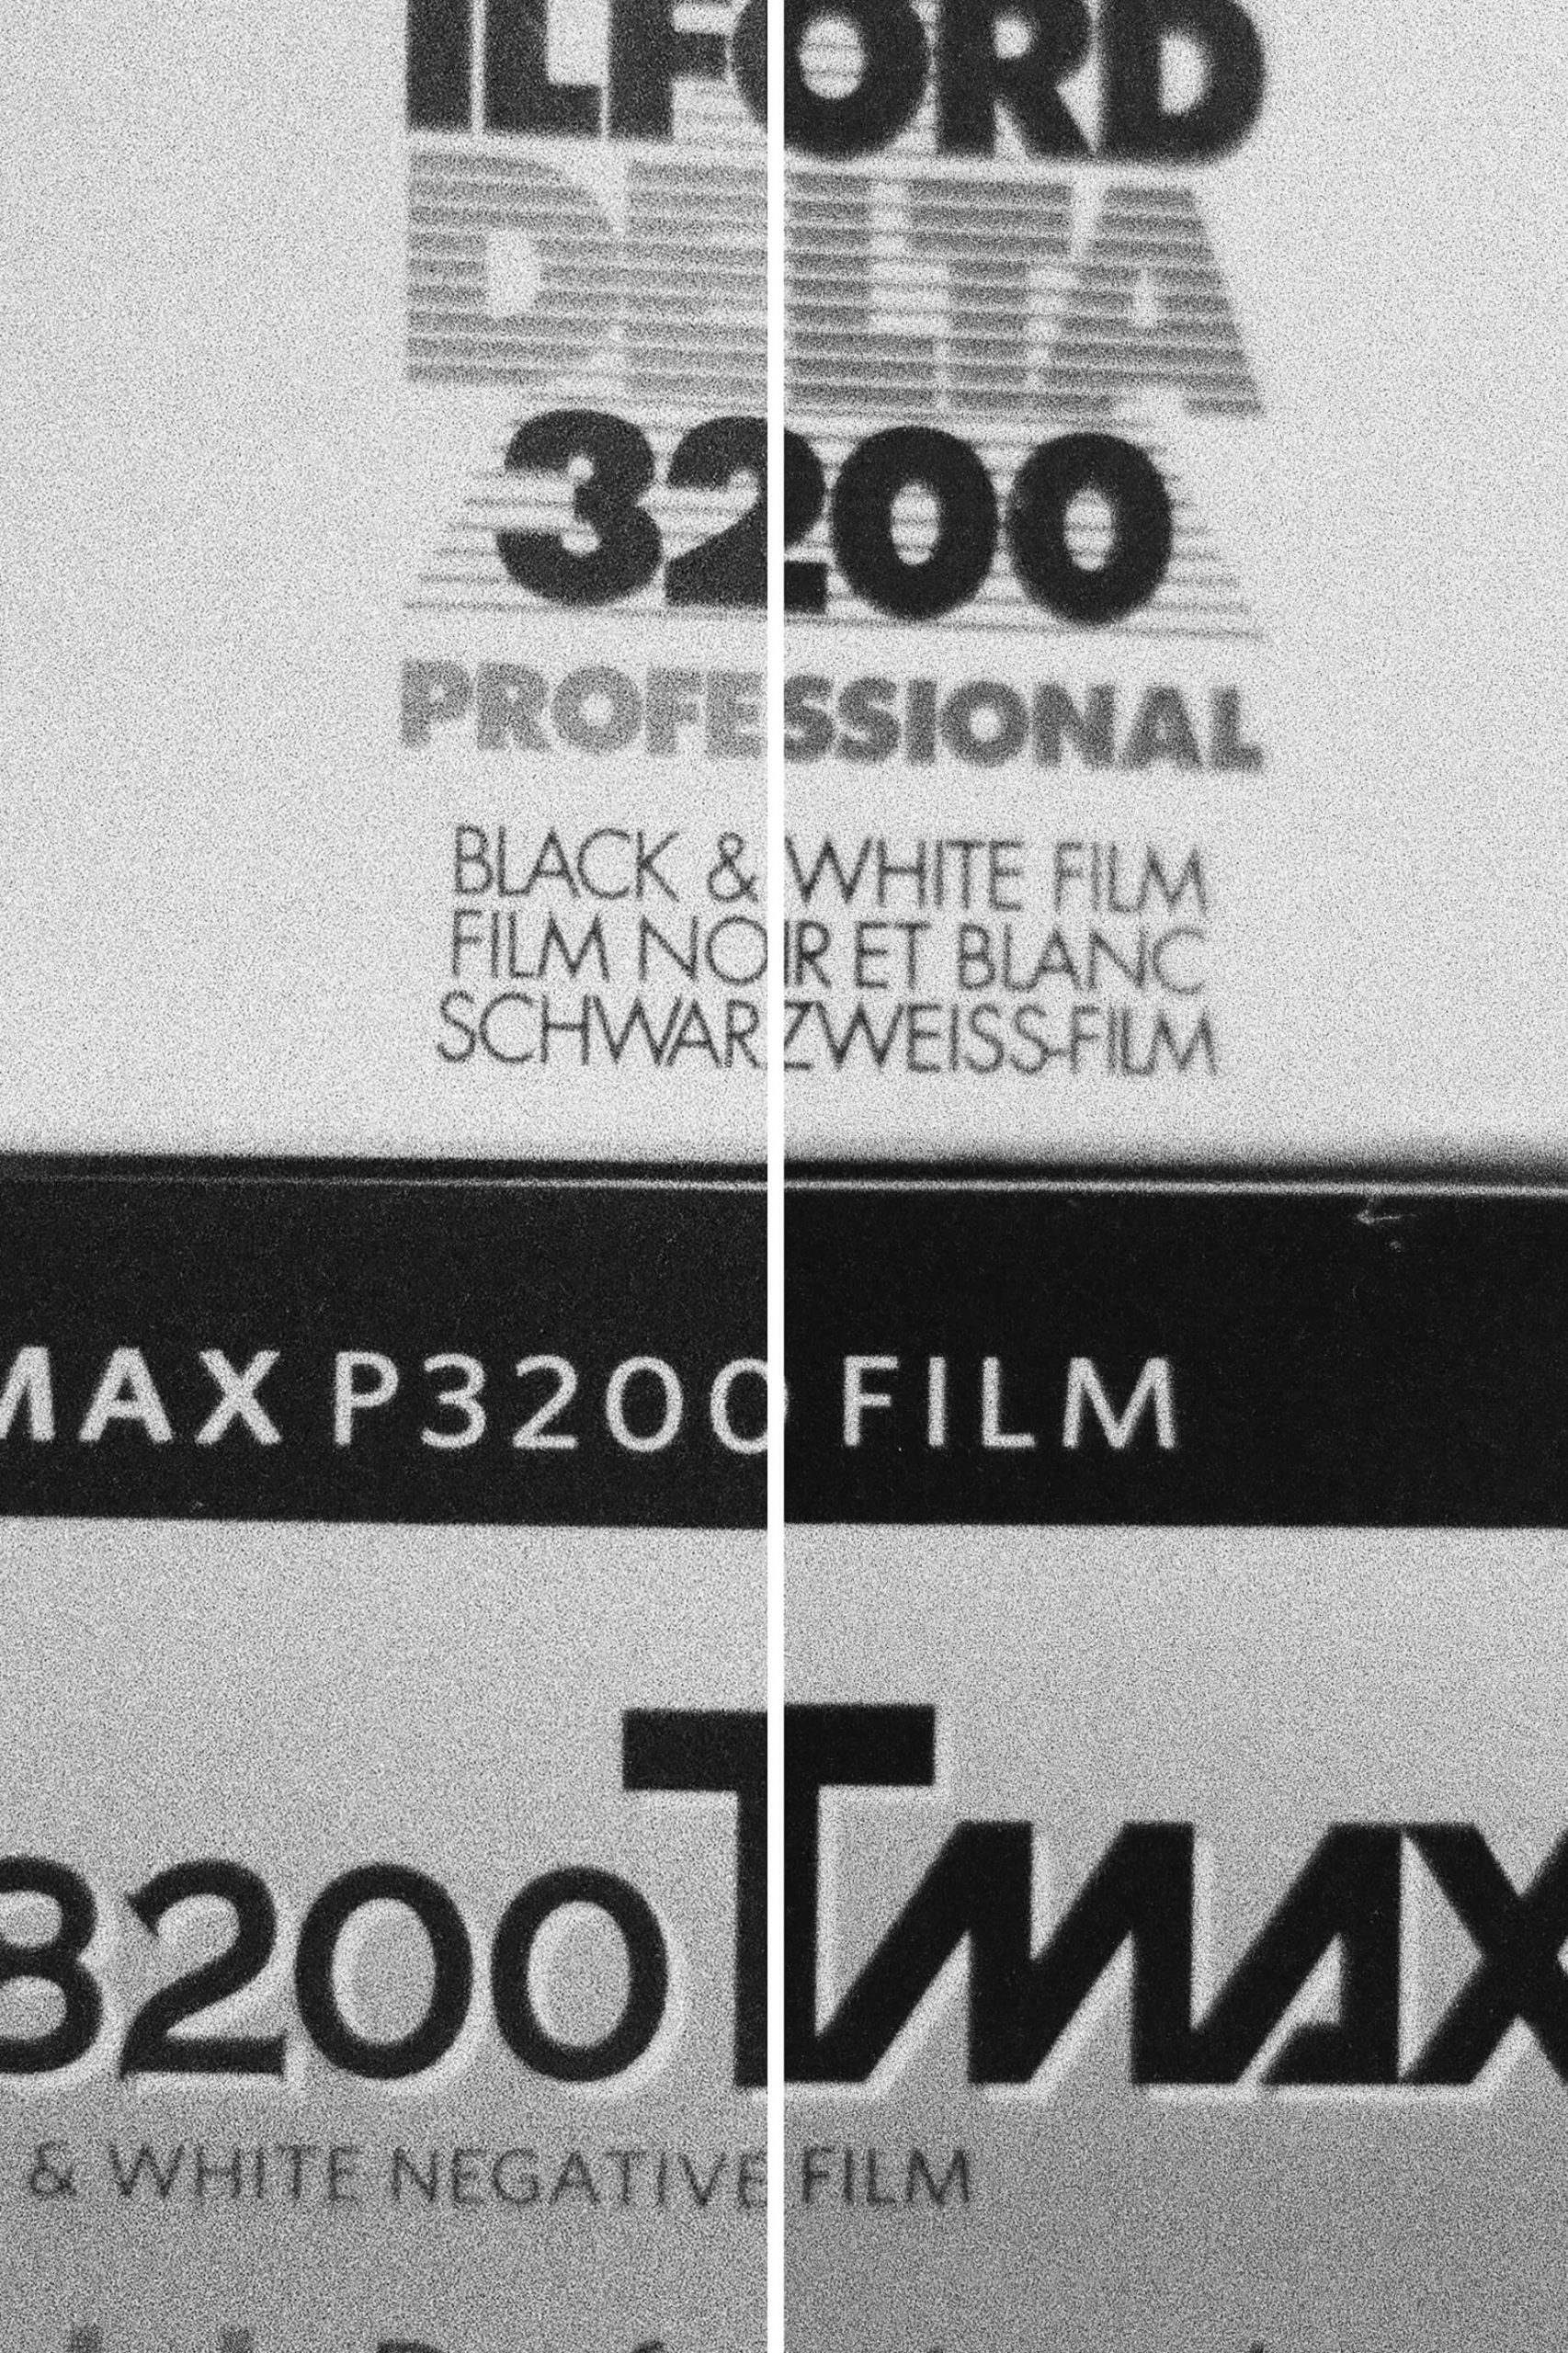 Delta 3200 vs T-MAX P3200 film box detail